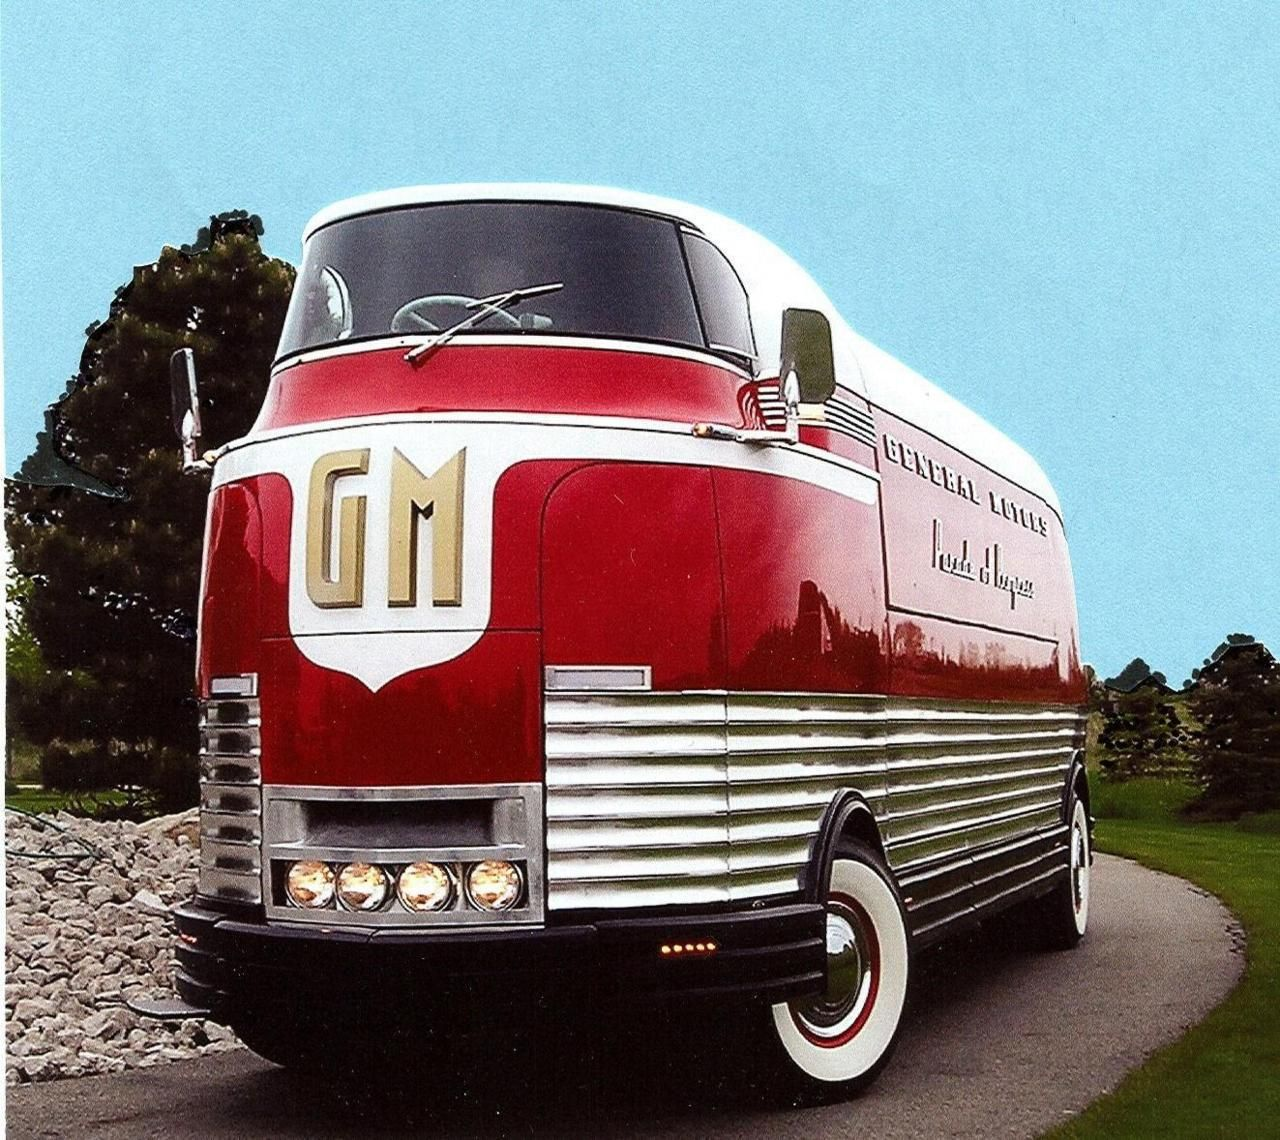 The GM Futurliners were a group of stylized buses designed in the ...